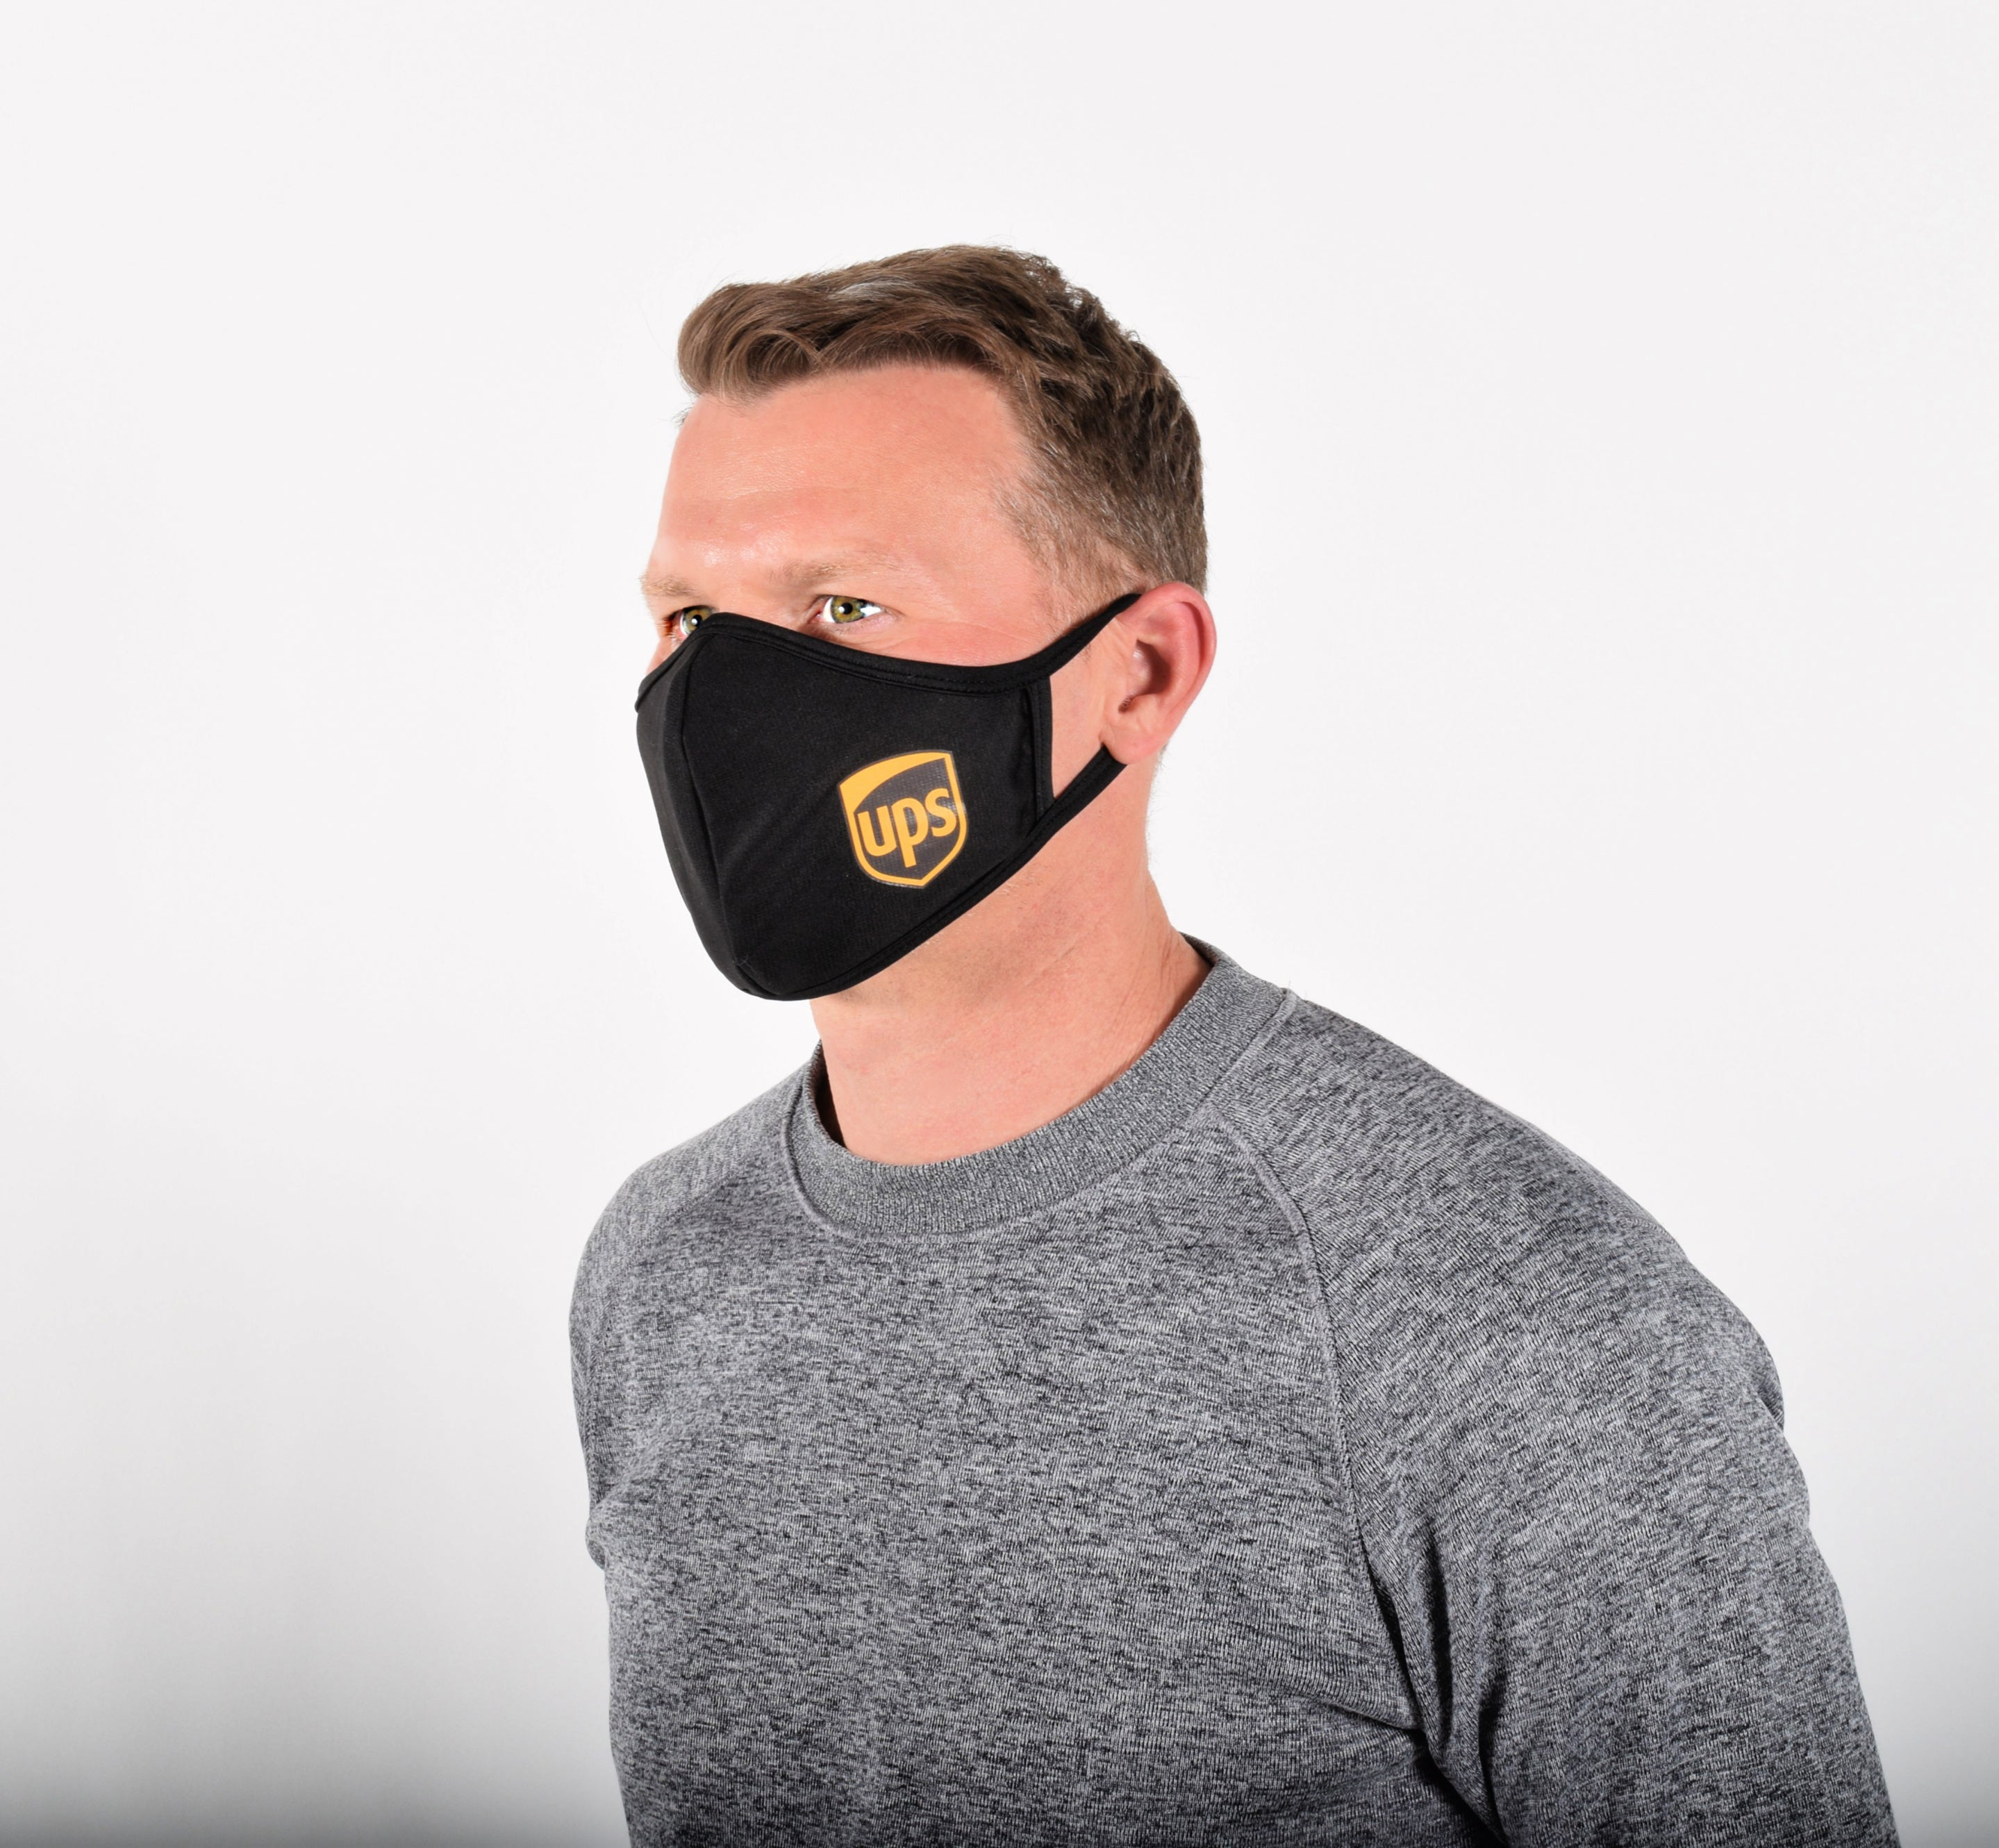 Mens Face Masks For Essential Workers,  Logistics or Delivery with Sleeve for Filter Of Your Choice Such as N95